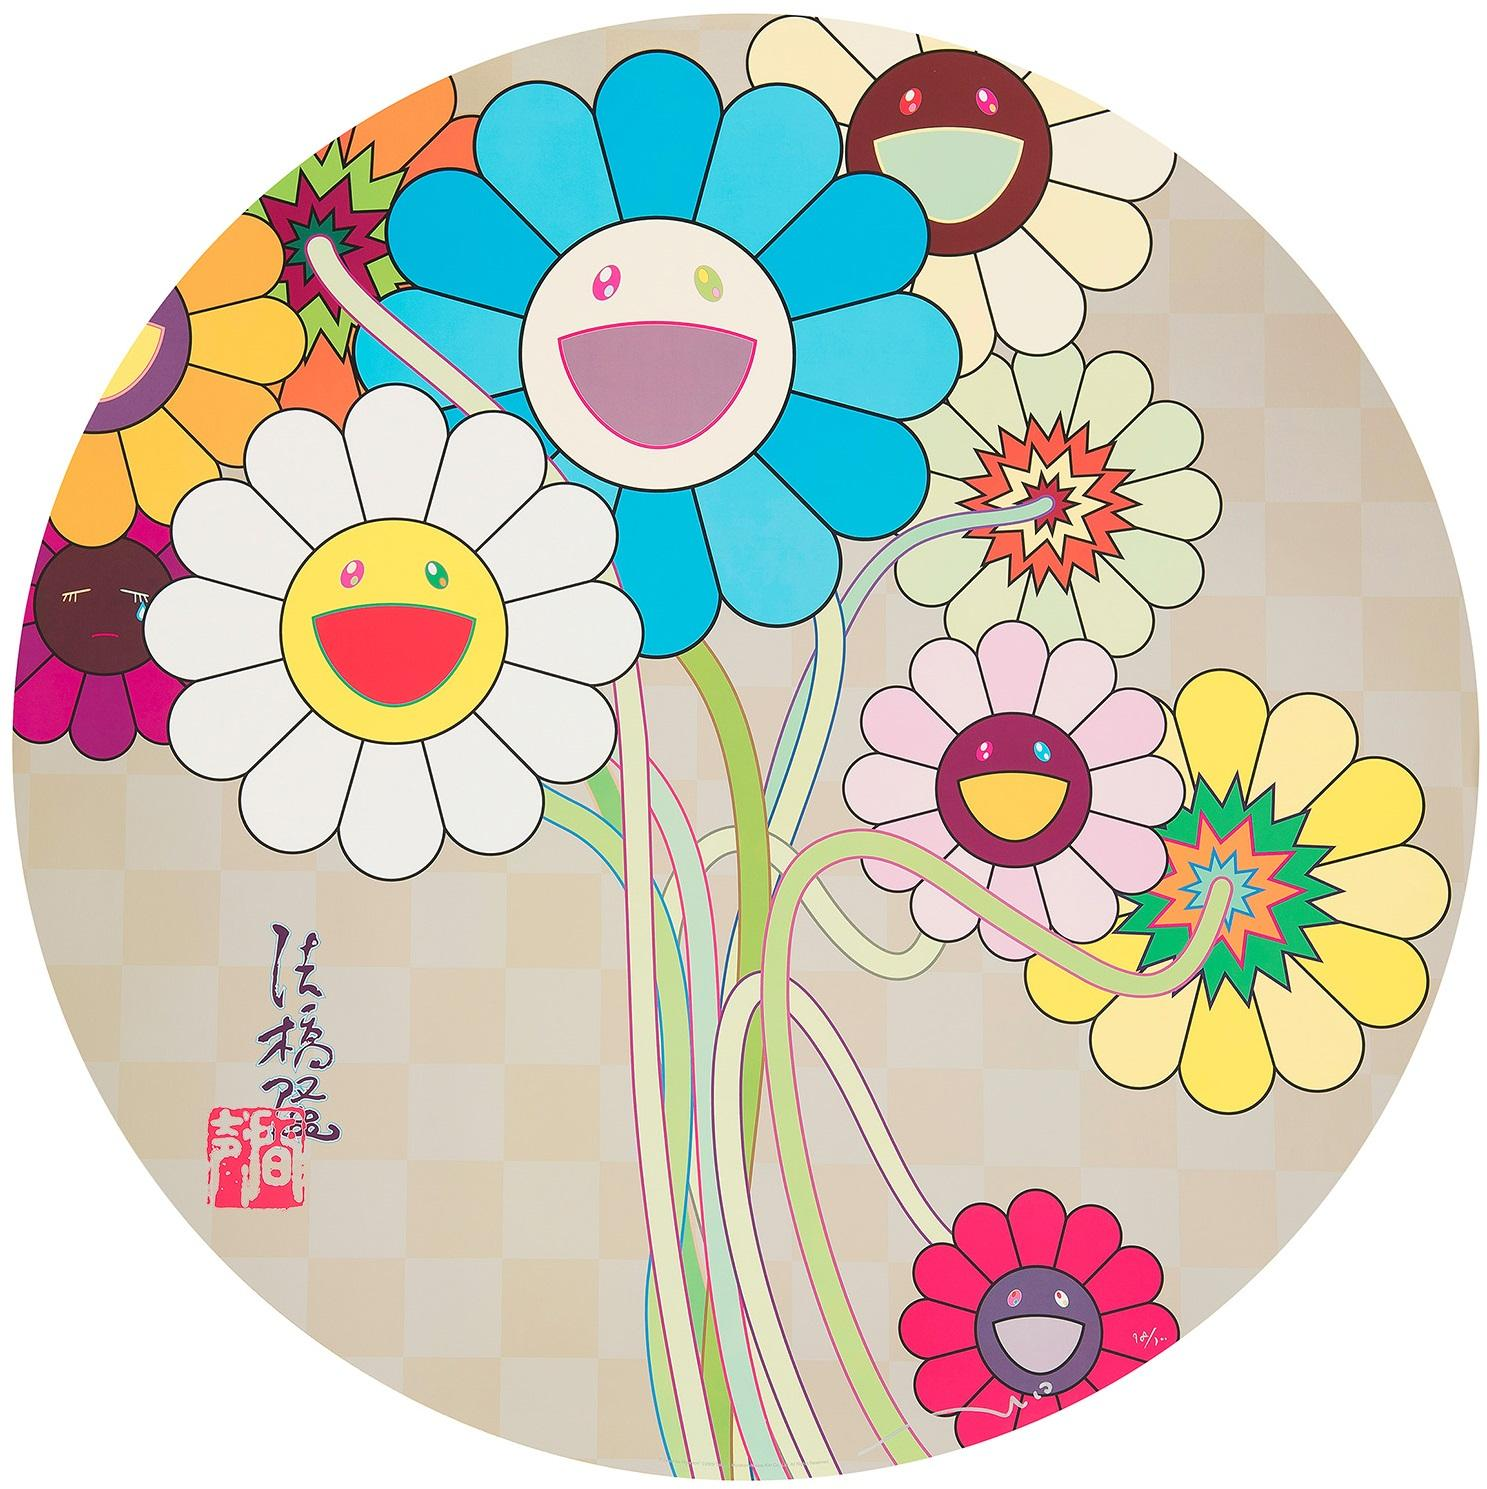 Flowers for Algernon. Limited Edition (print) by Takashi Murakami signed